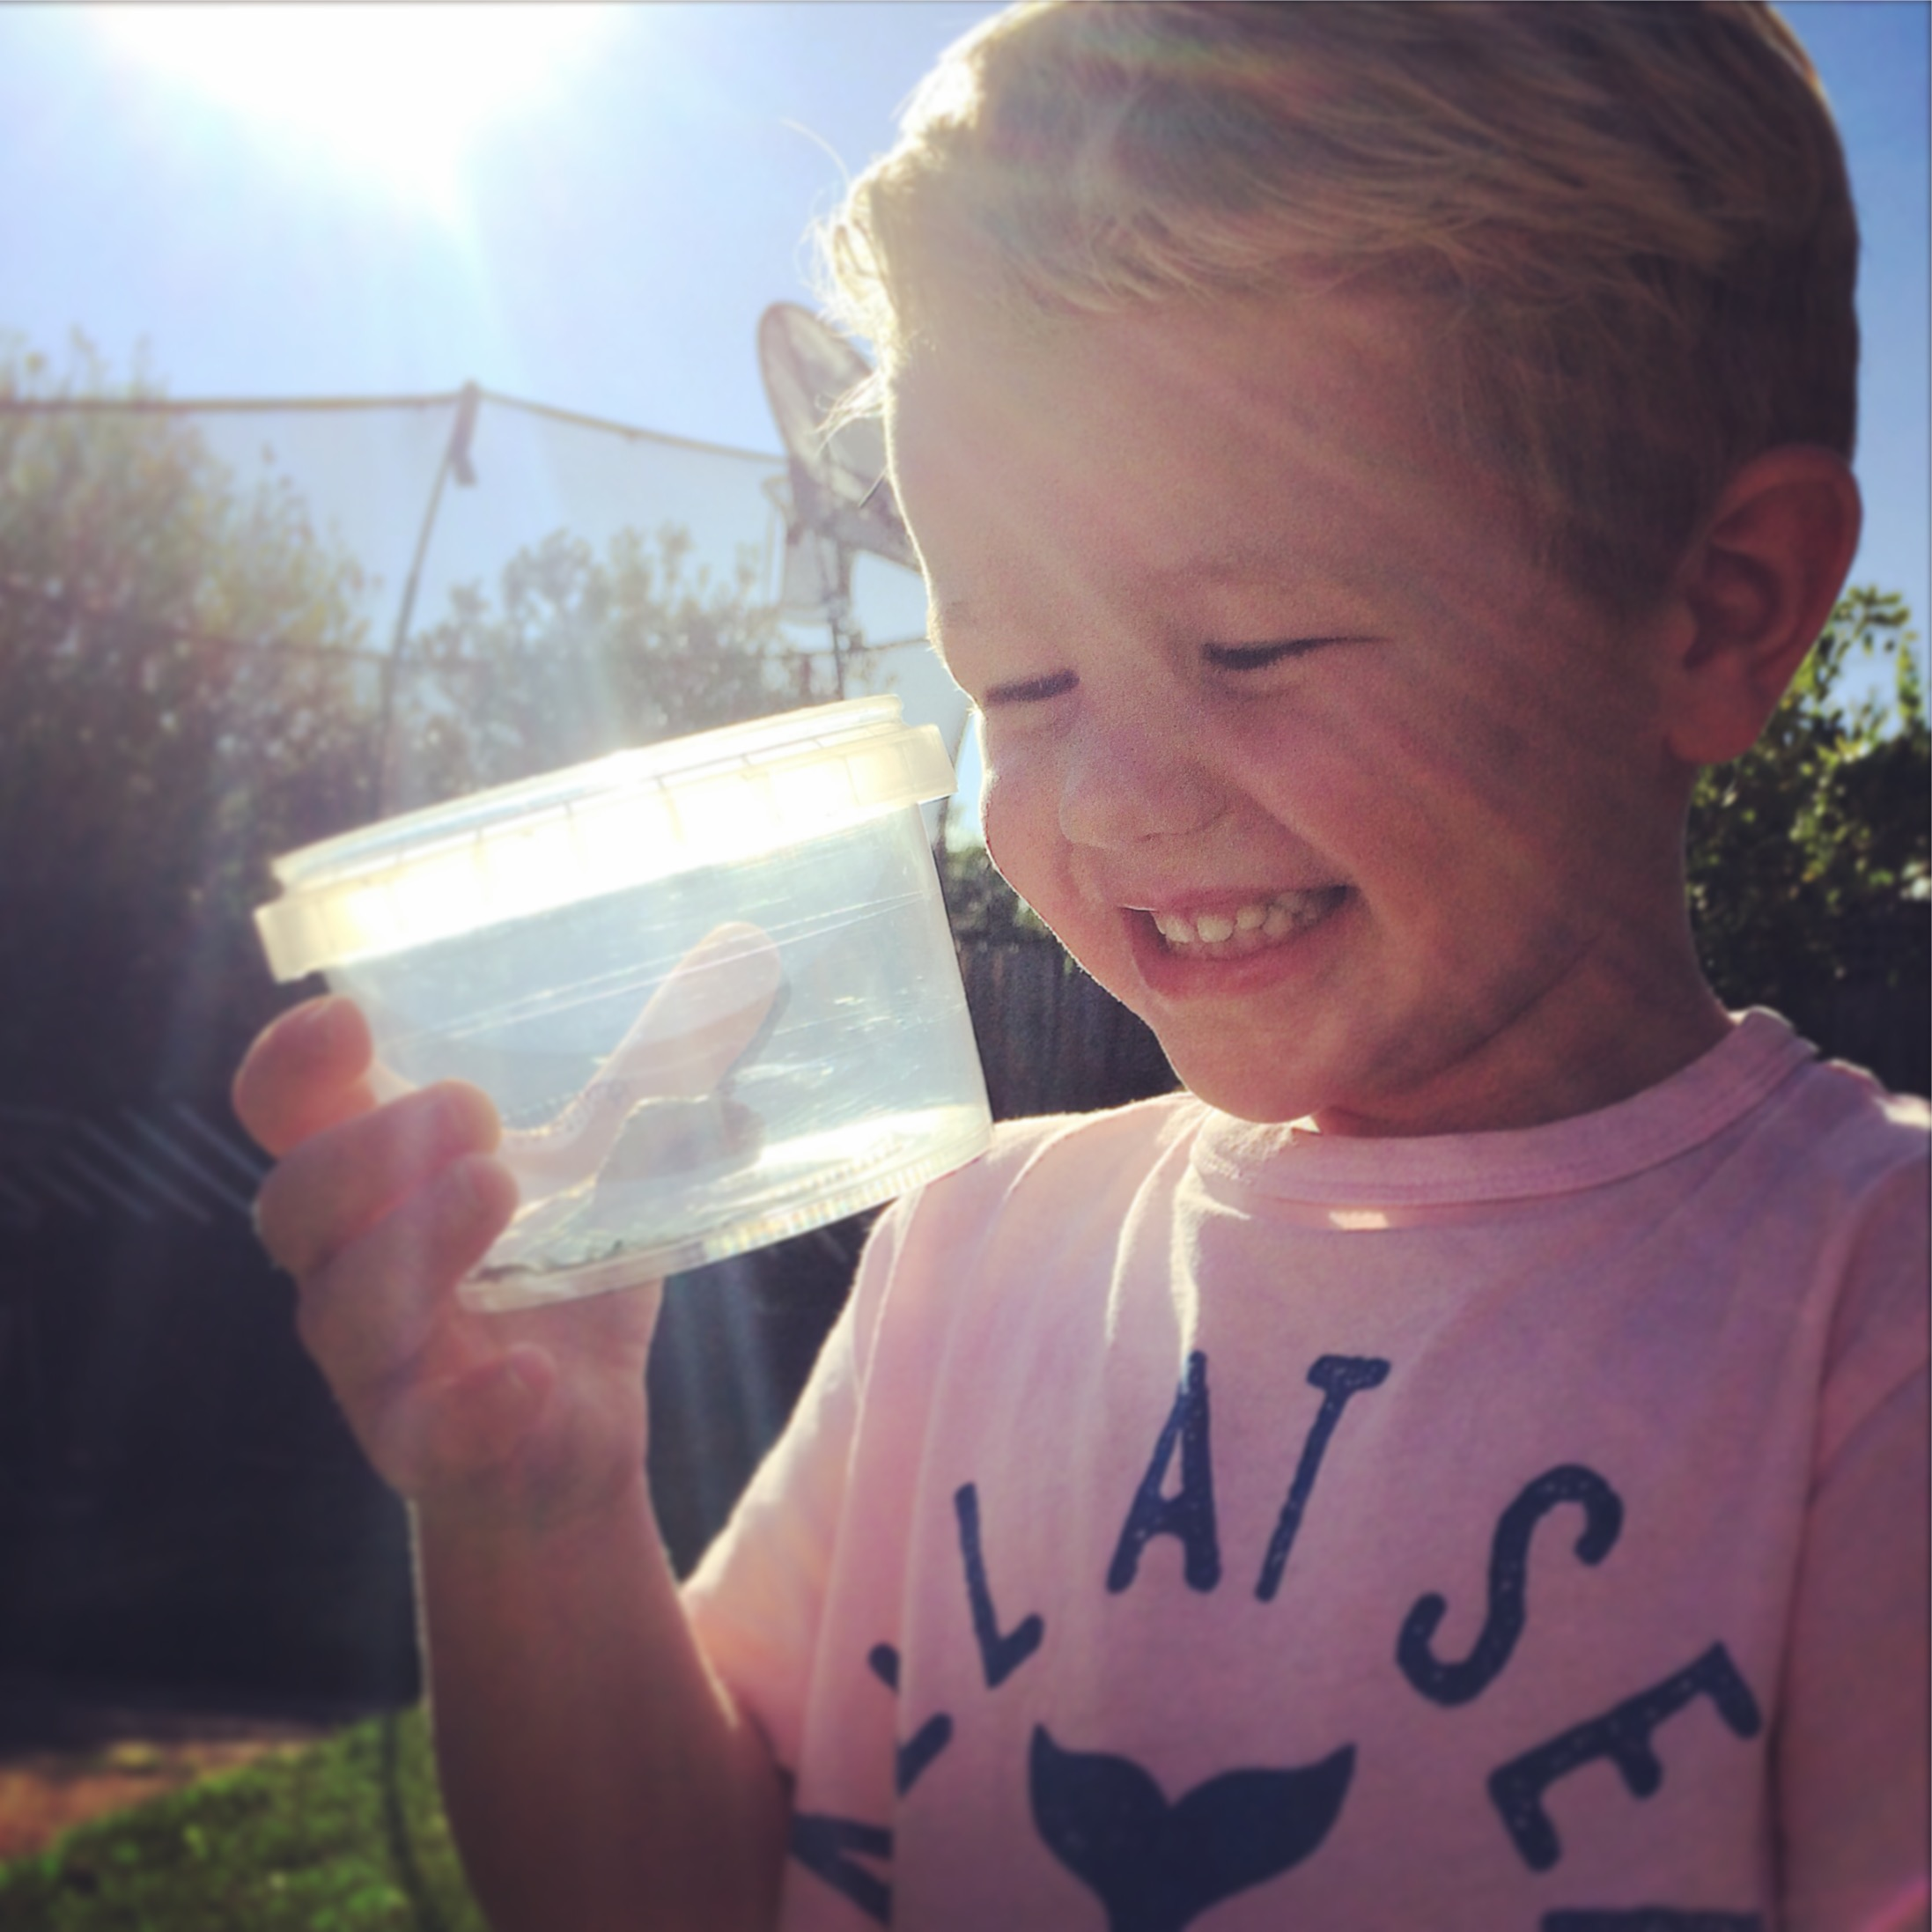 A young boy looking at a bug in a container